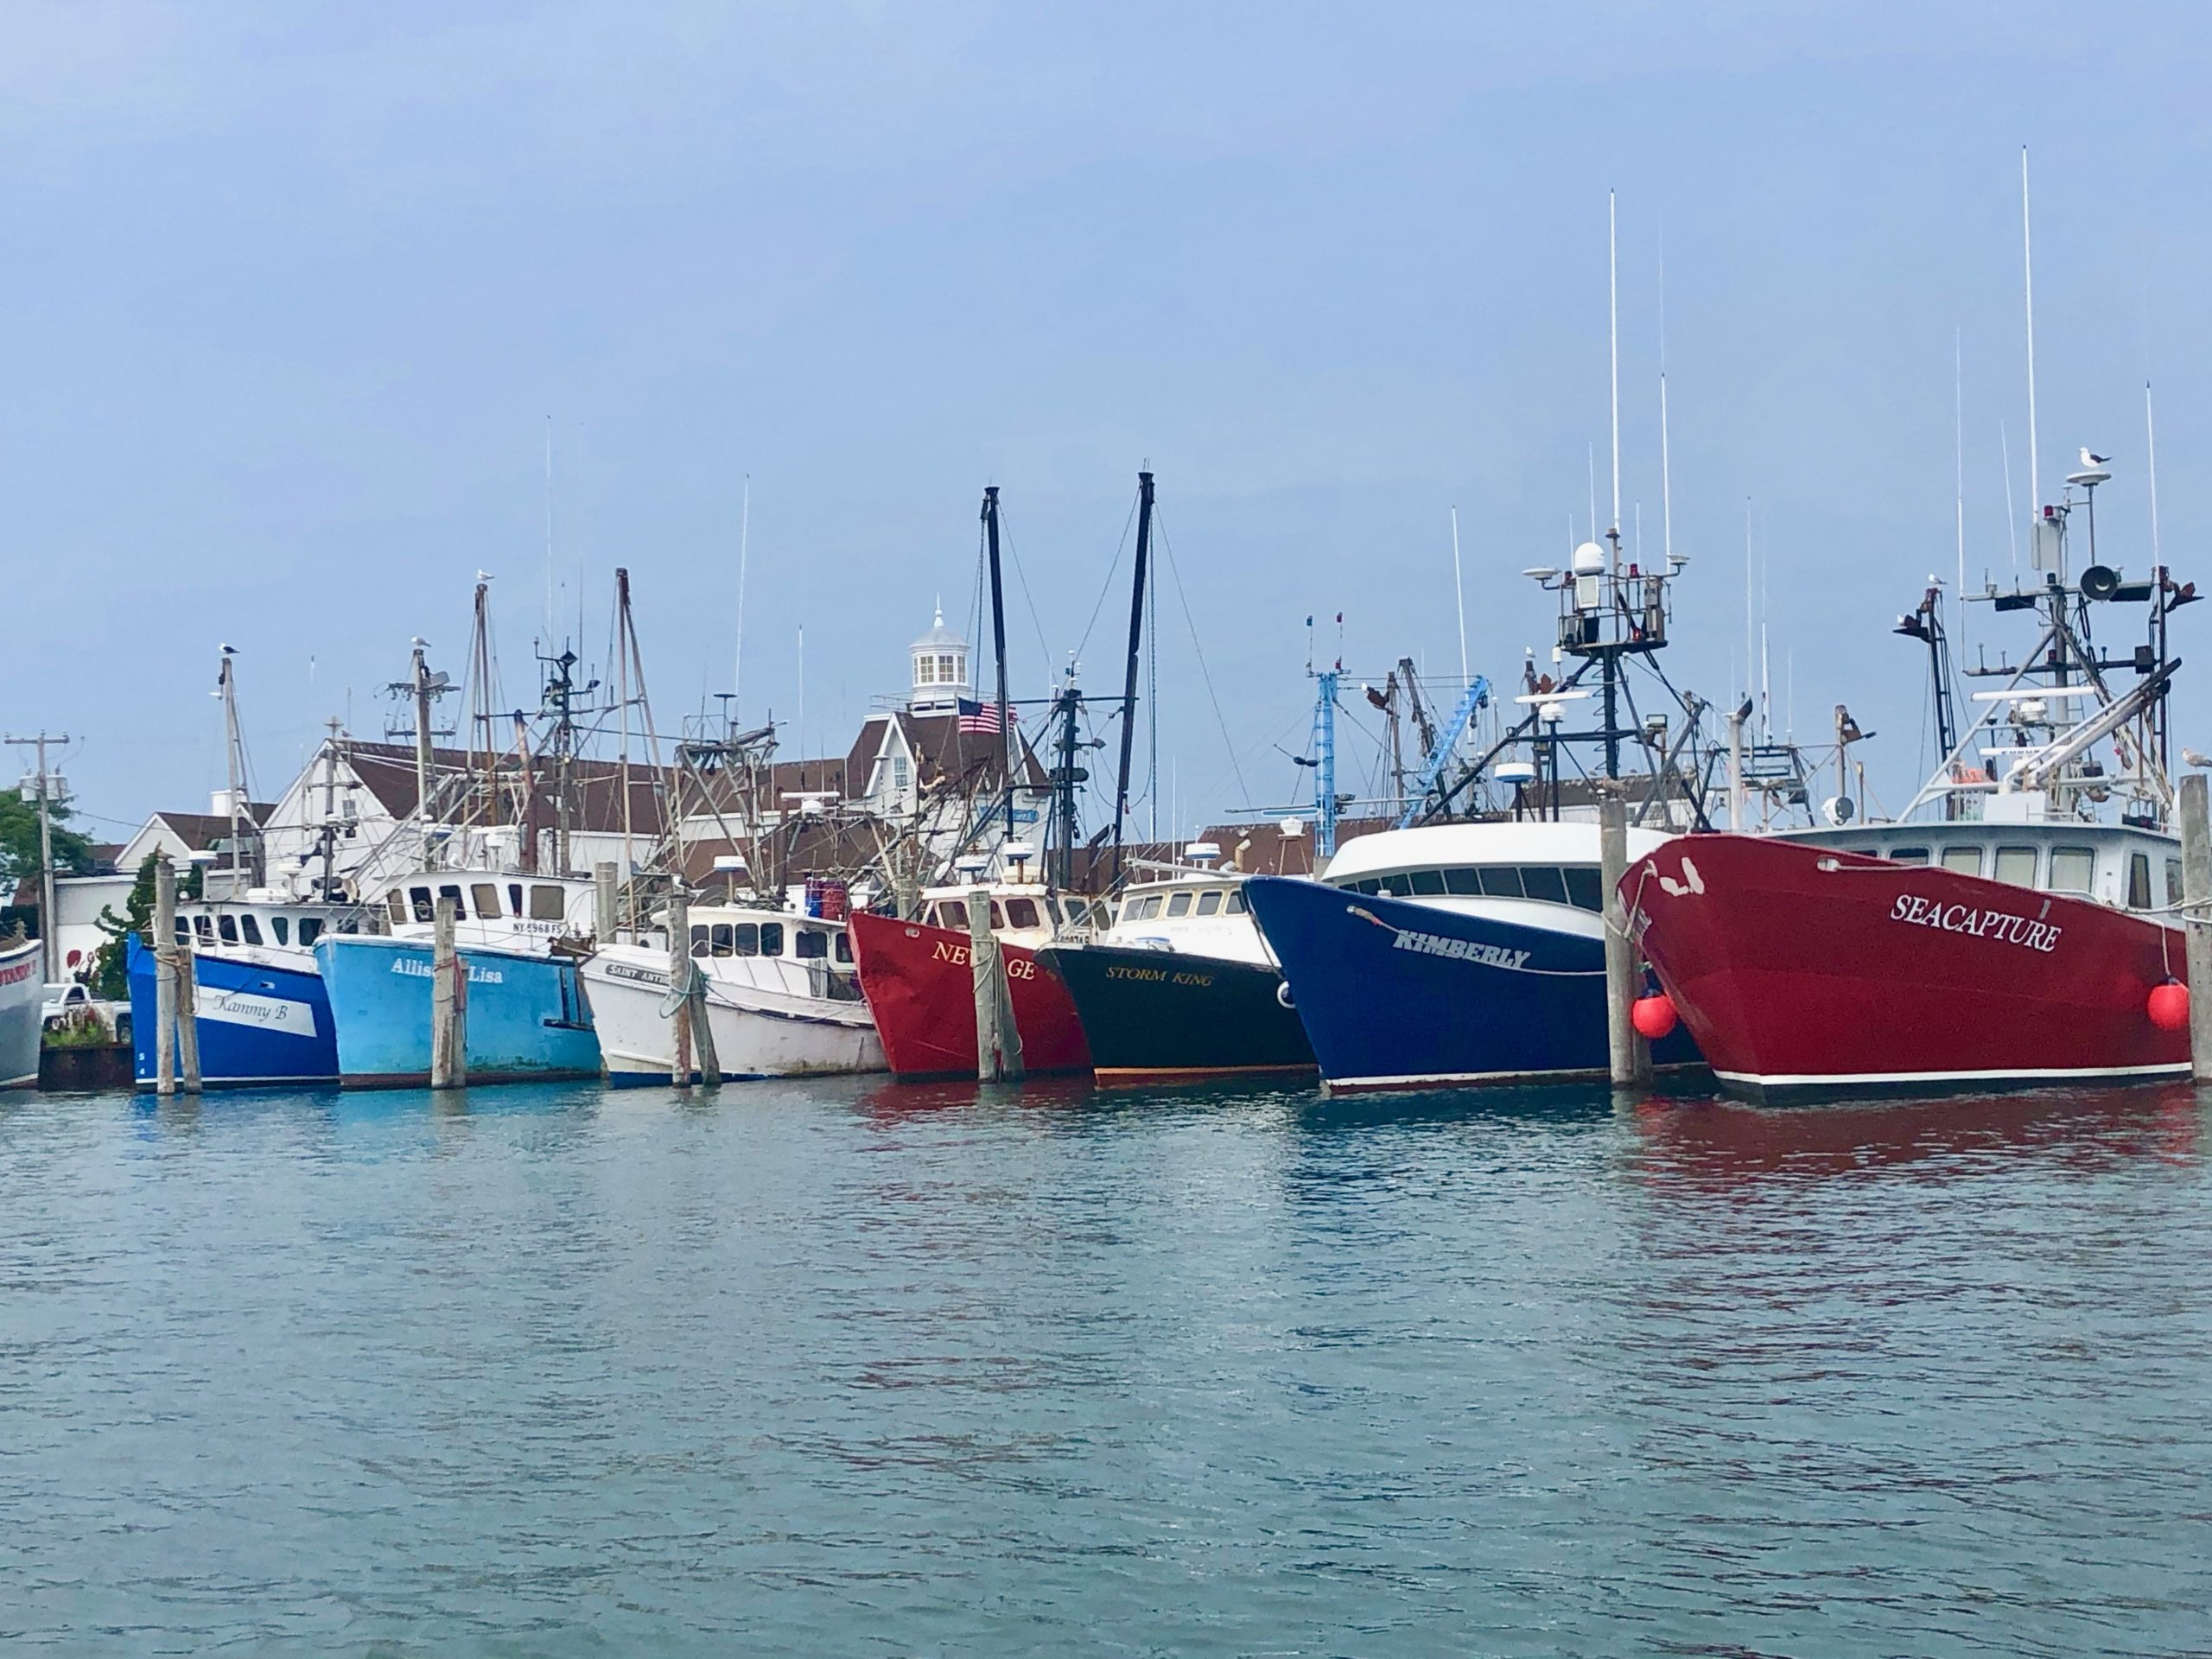 Scientists still start studying fish migrations this summer as a baseline for tracking how stock distributions change after industrial scale wind farms start being built south of New England.